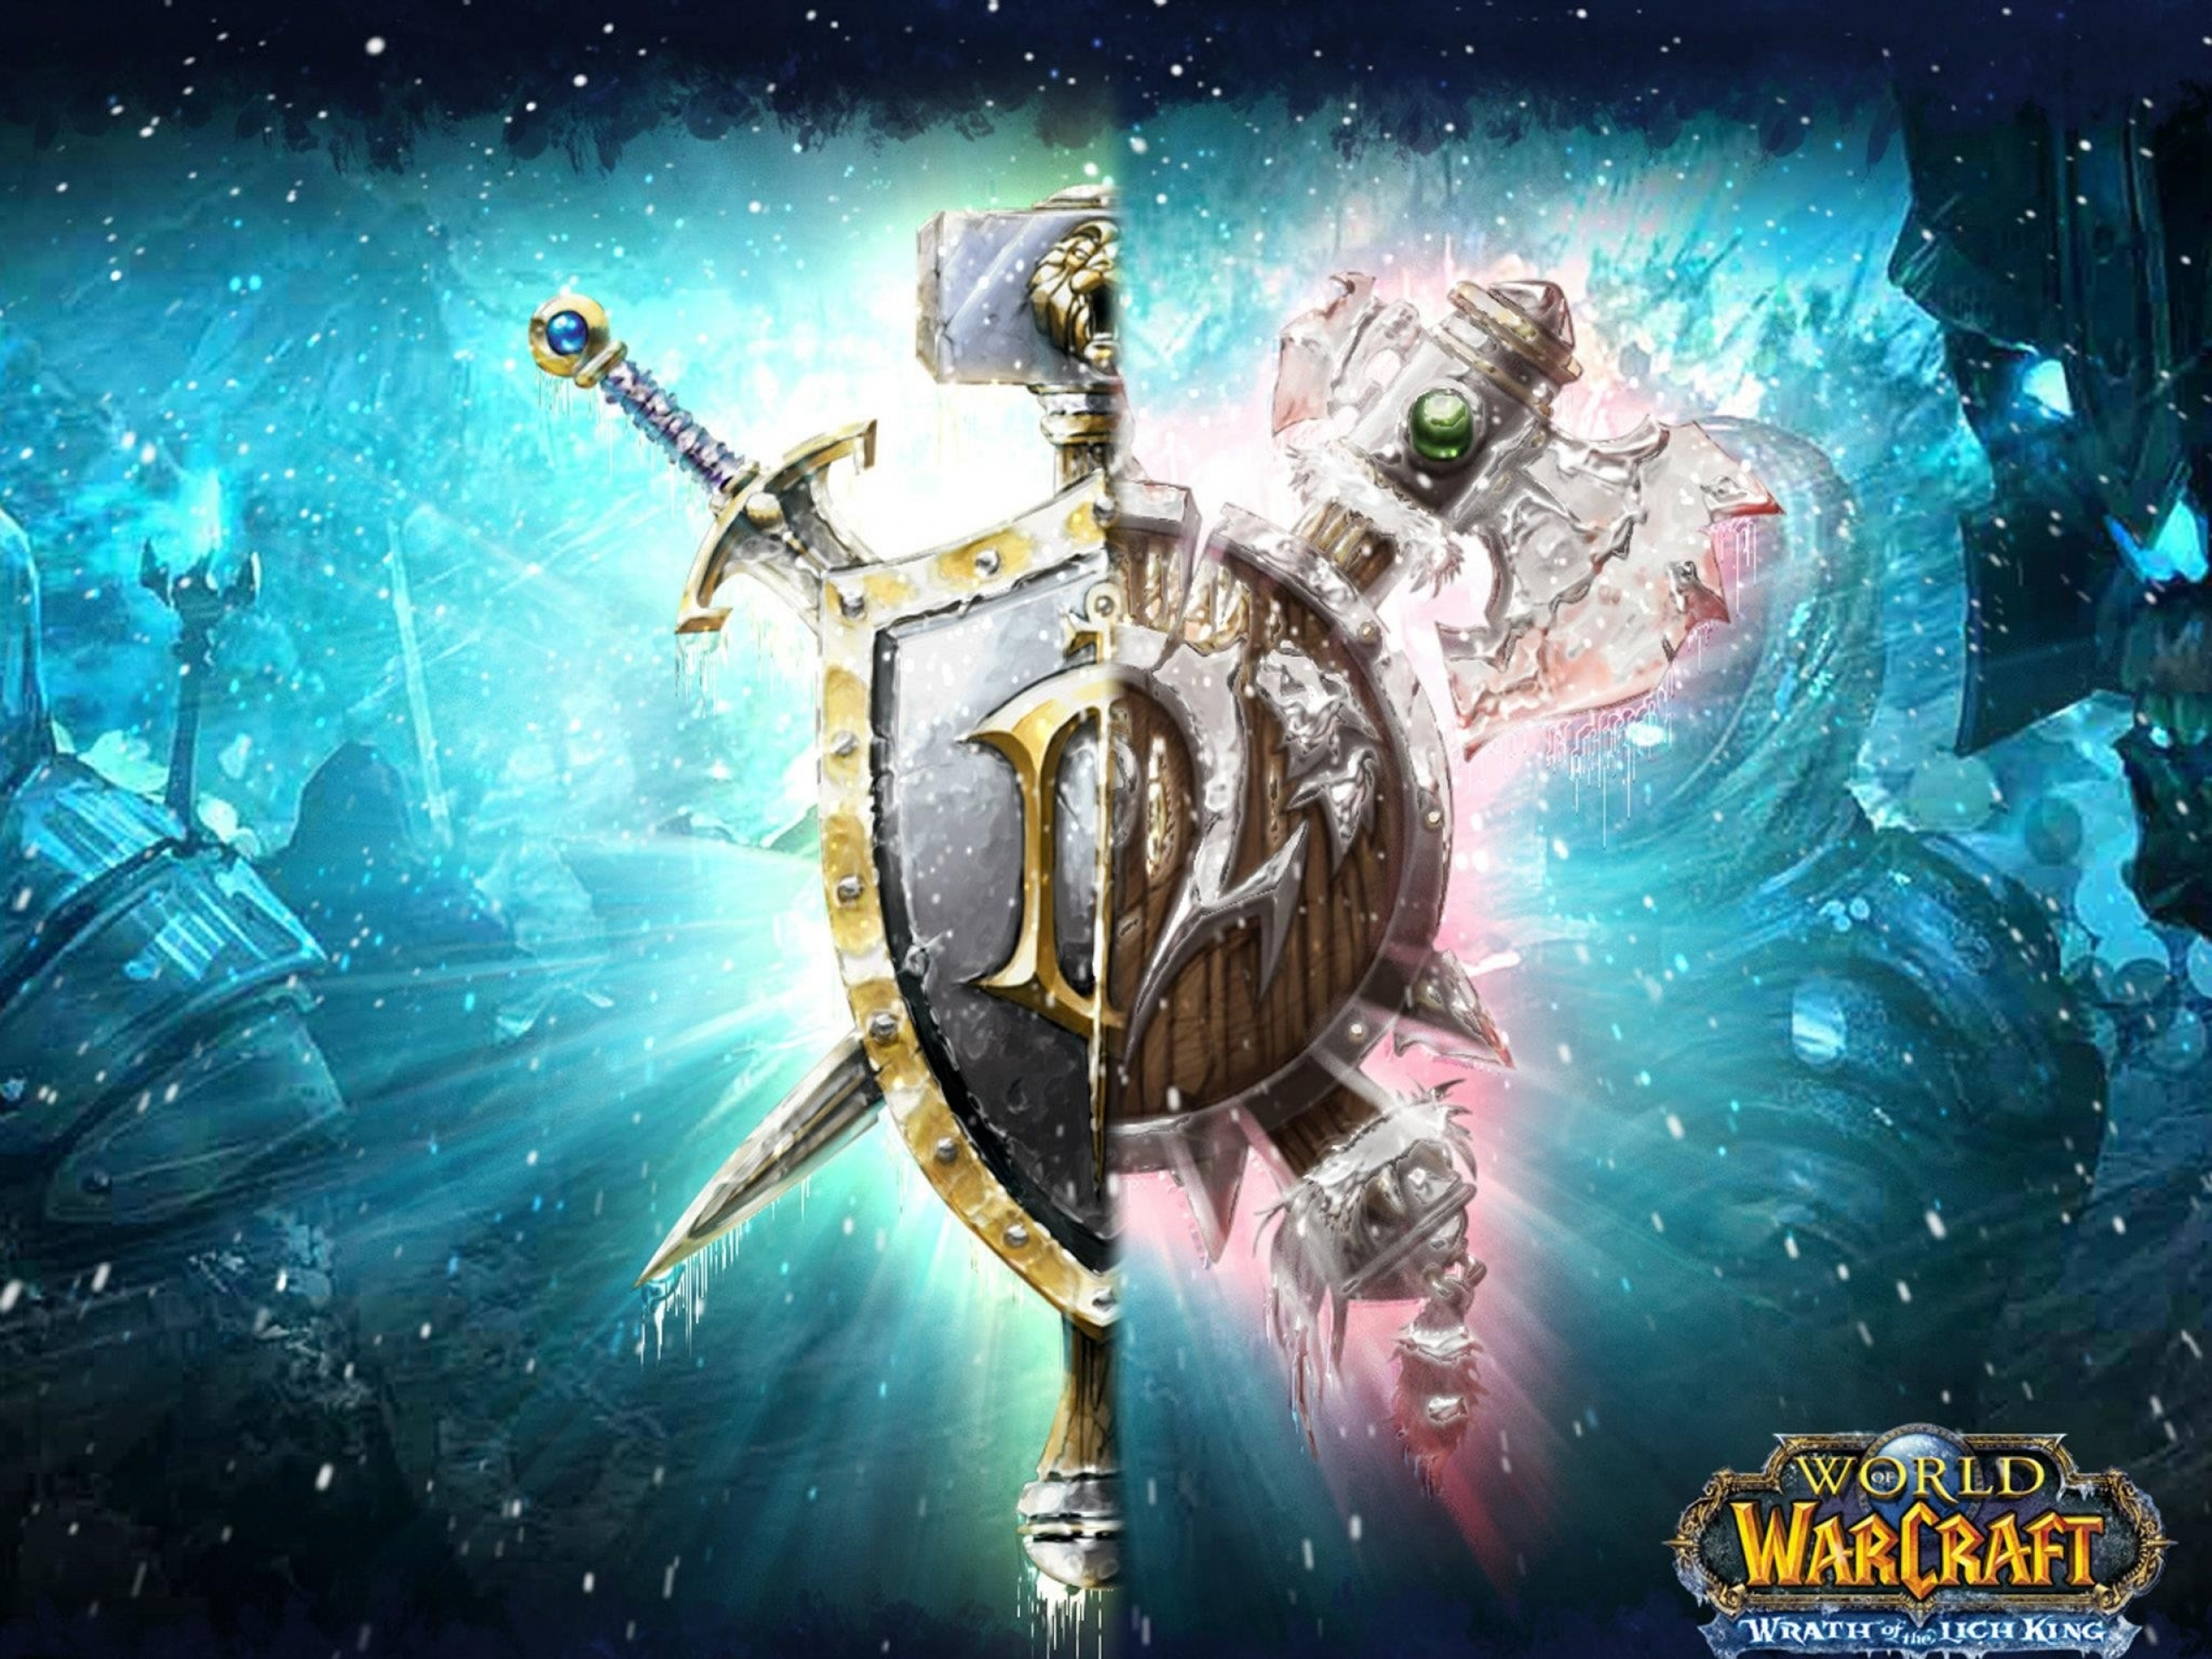 Fall Of The Lich King Wallpaper World Of Warcraft Wrath Of The Lich King Hd Wallpaper